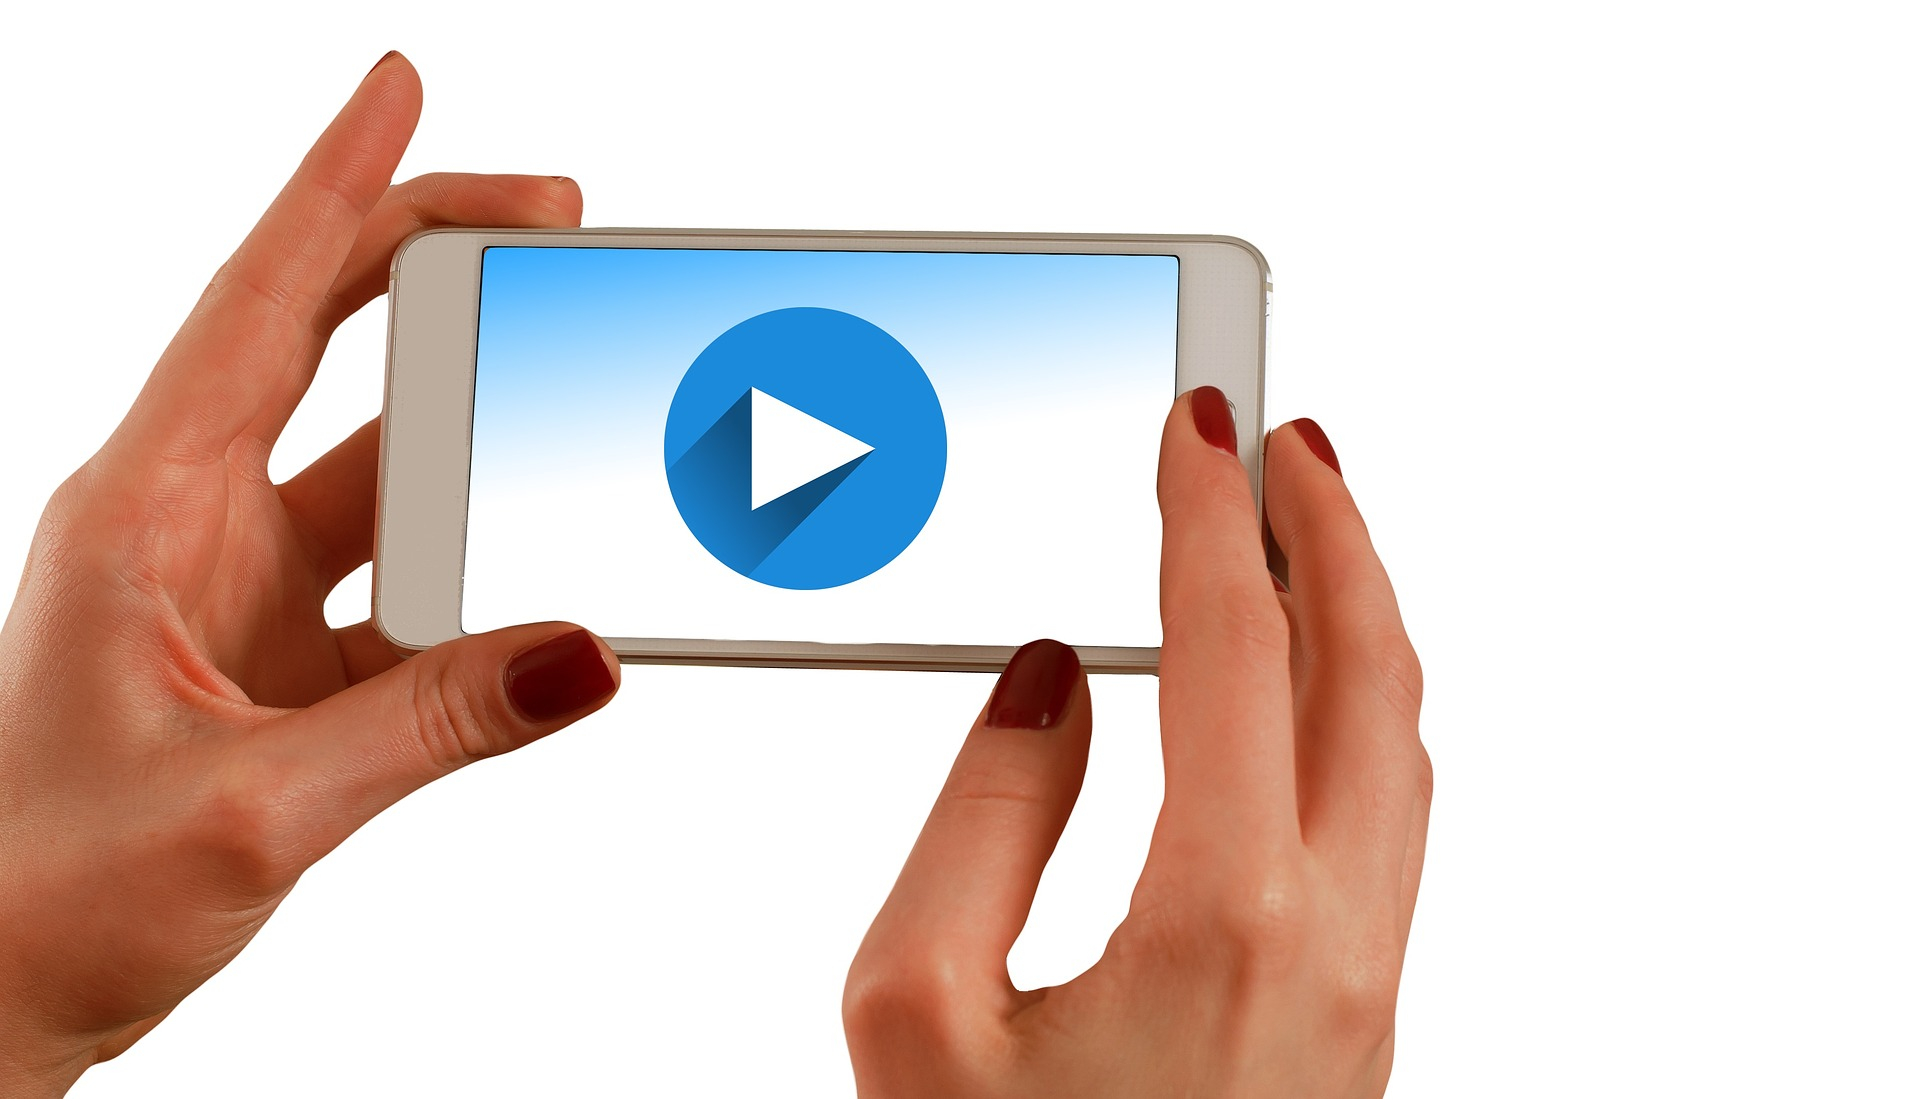 hands-1167621_1920 Videos, Videos, Videos! Your Digital Marketing Weekly Roundup